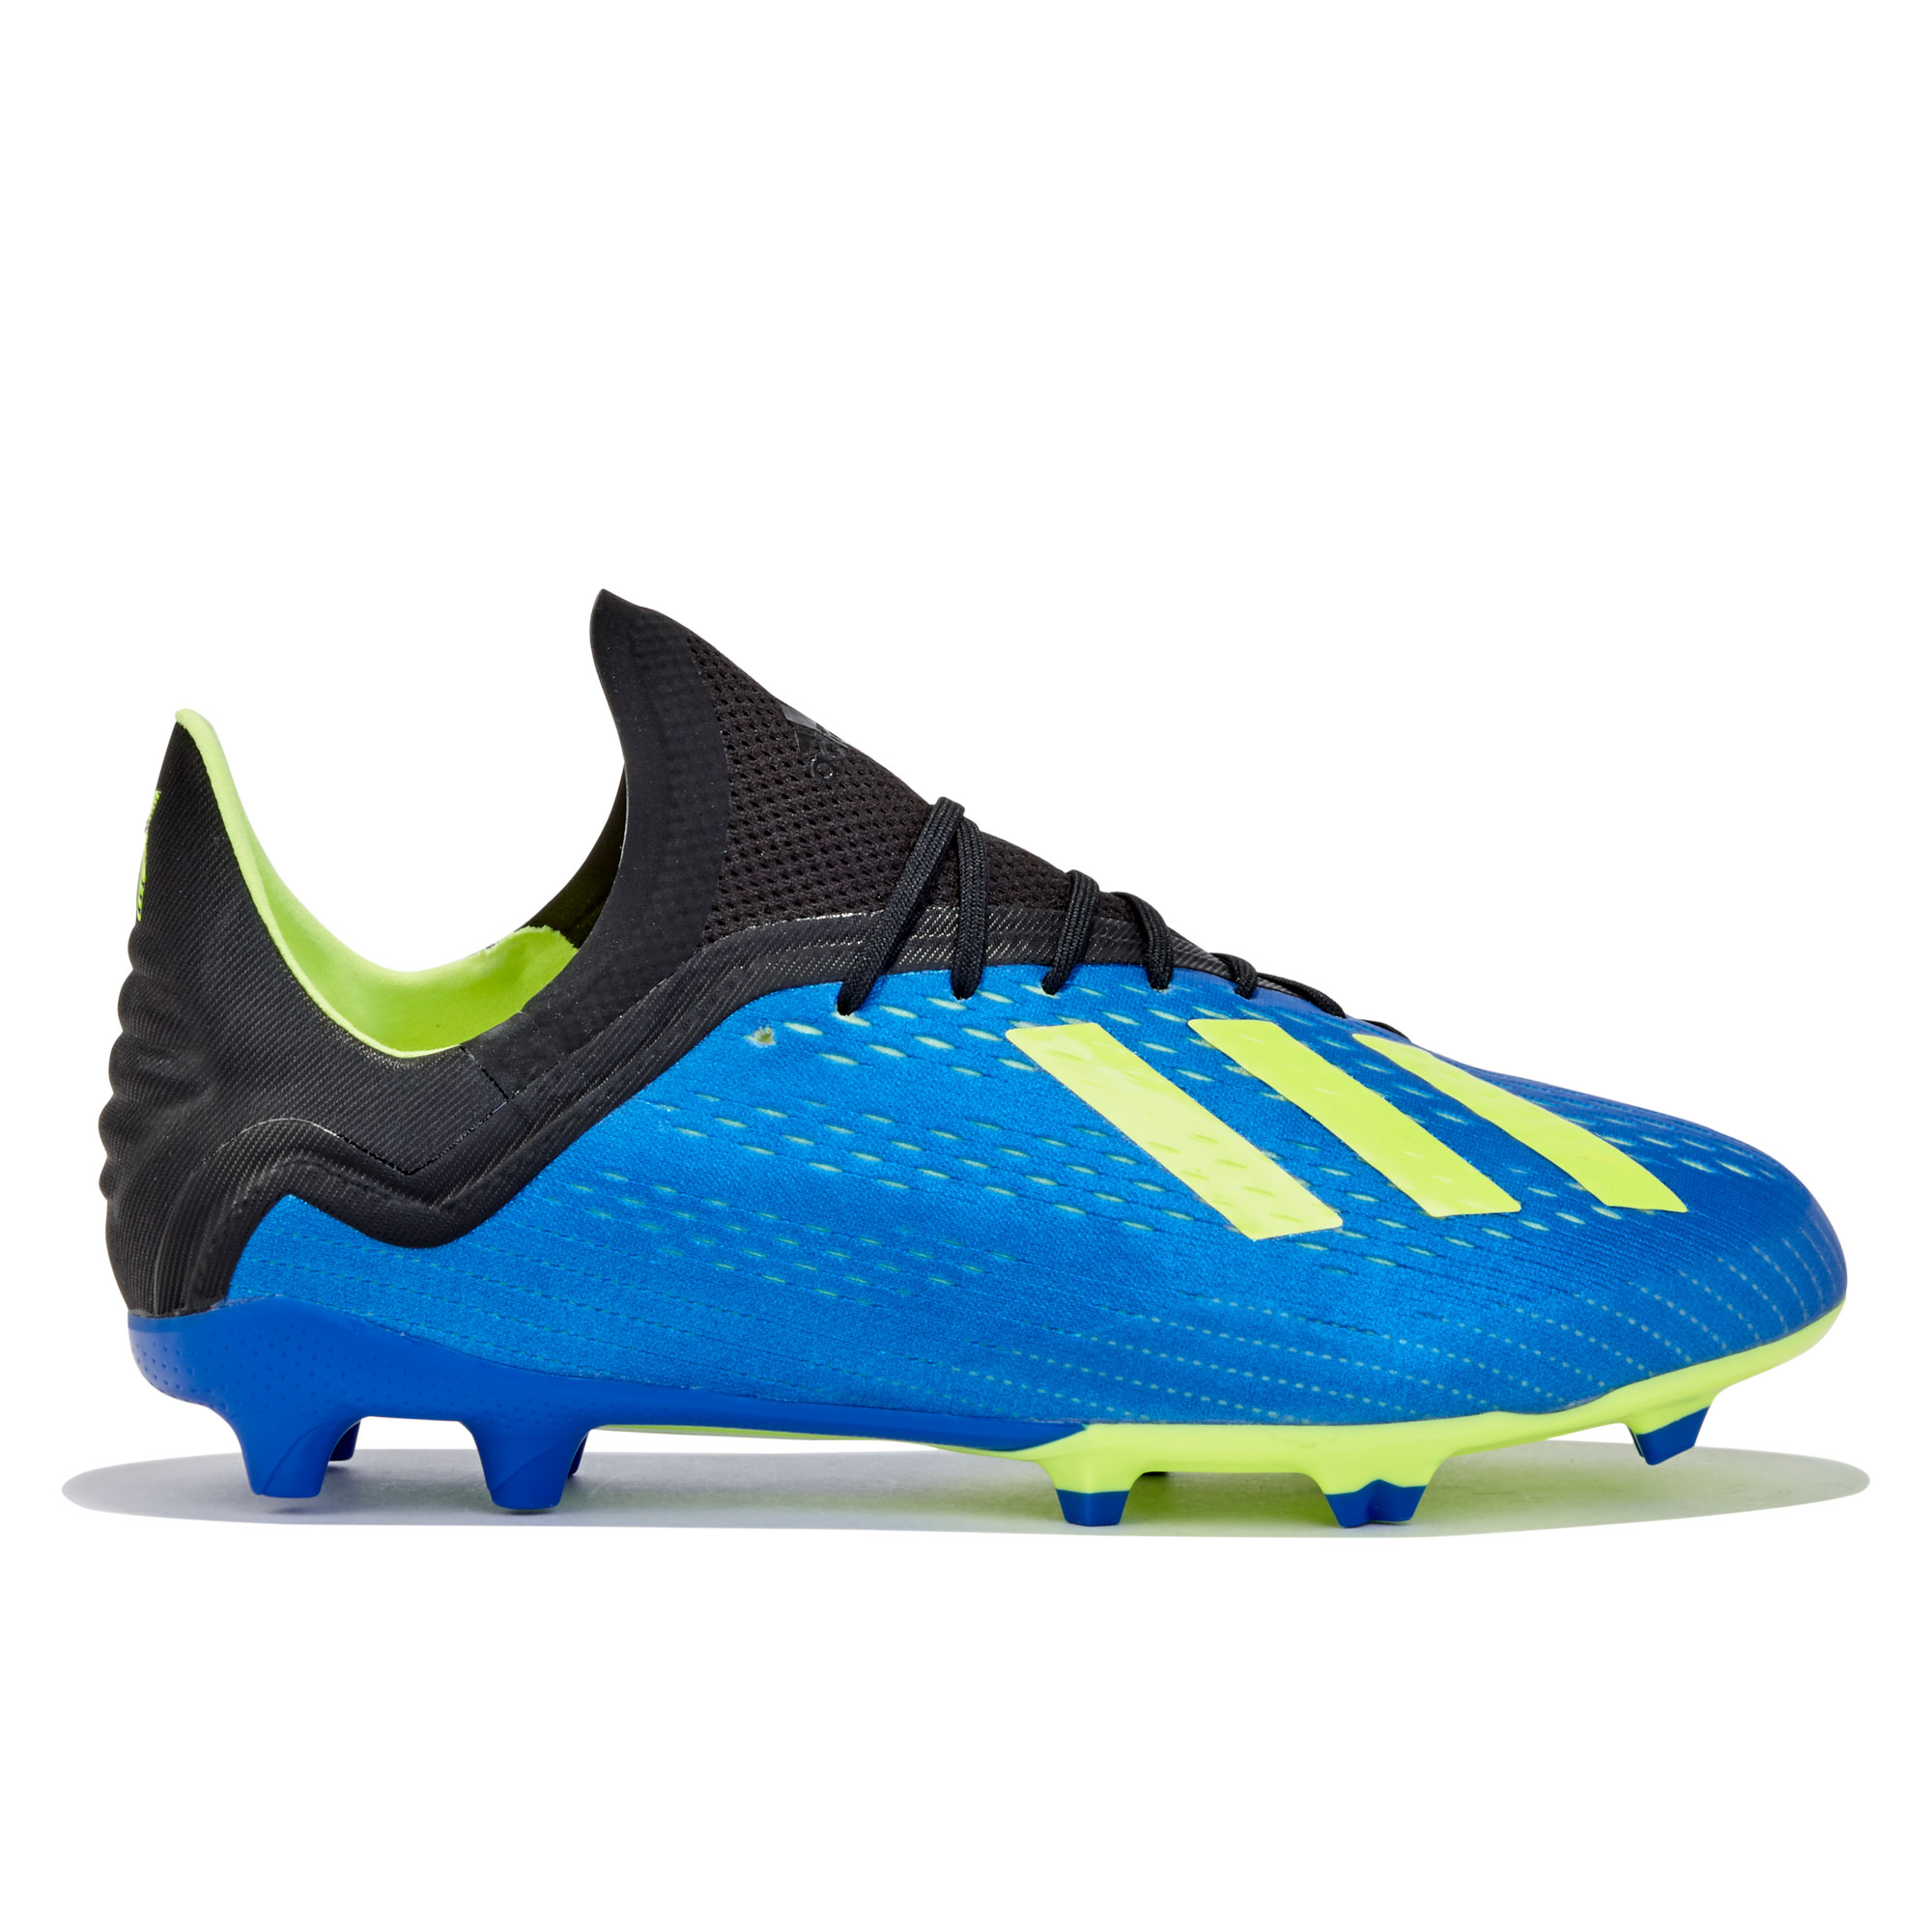 Image of adidas X 18.1 Firm Ground Football Boots - Blue - Kids